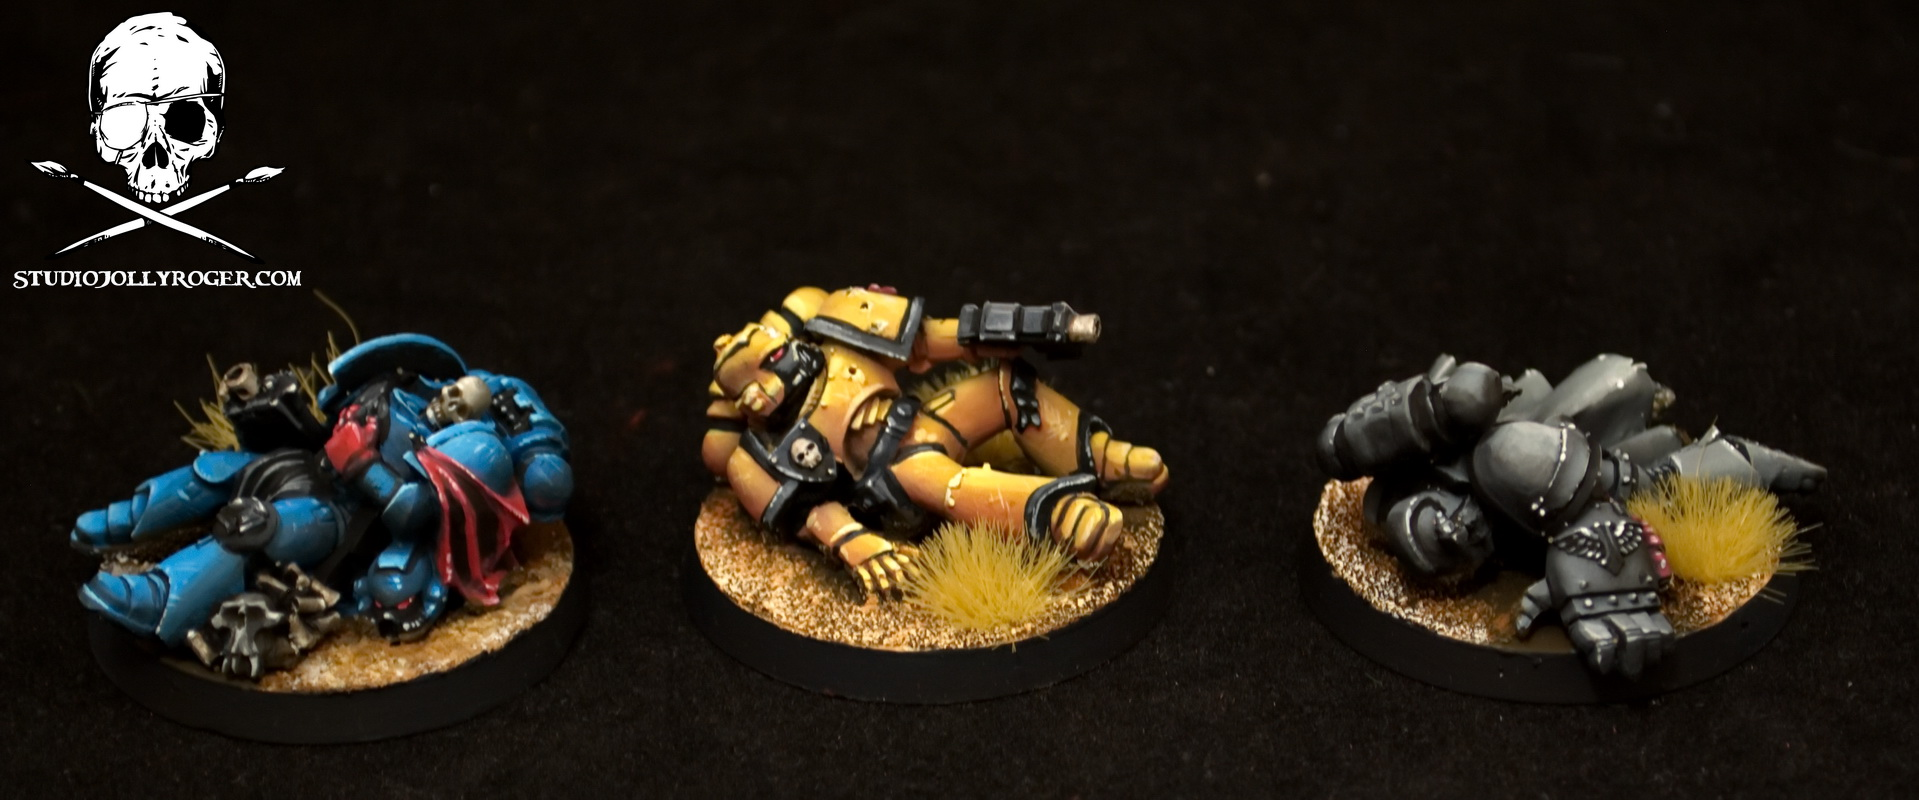 Imperial Fist Infiltrators